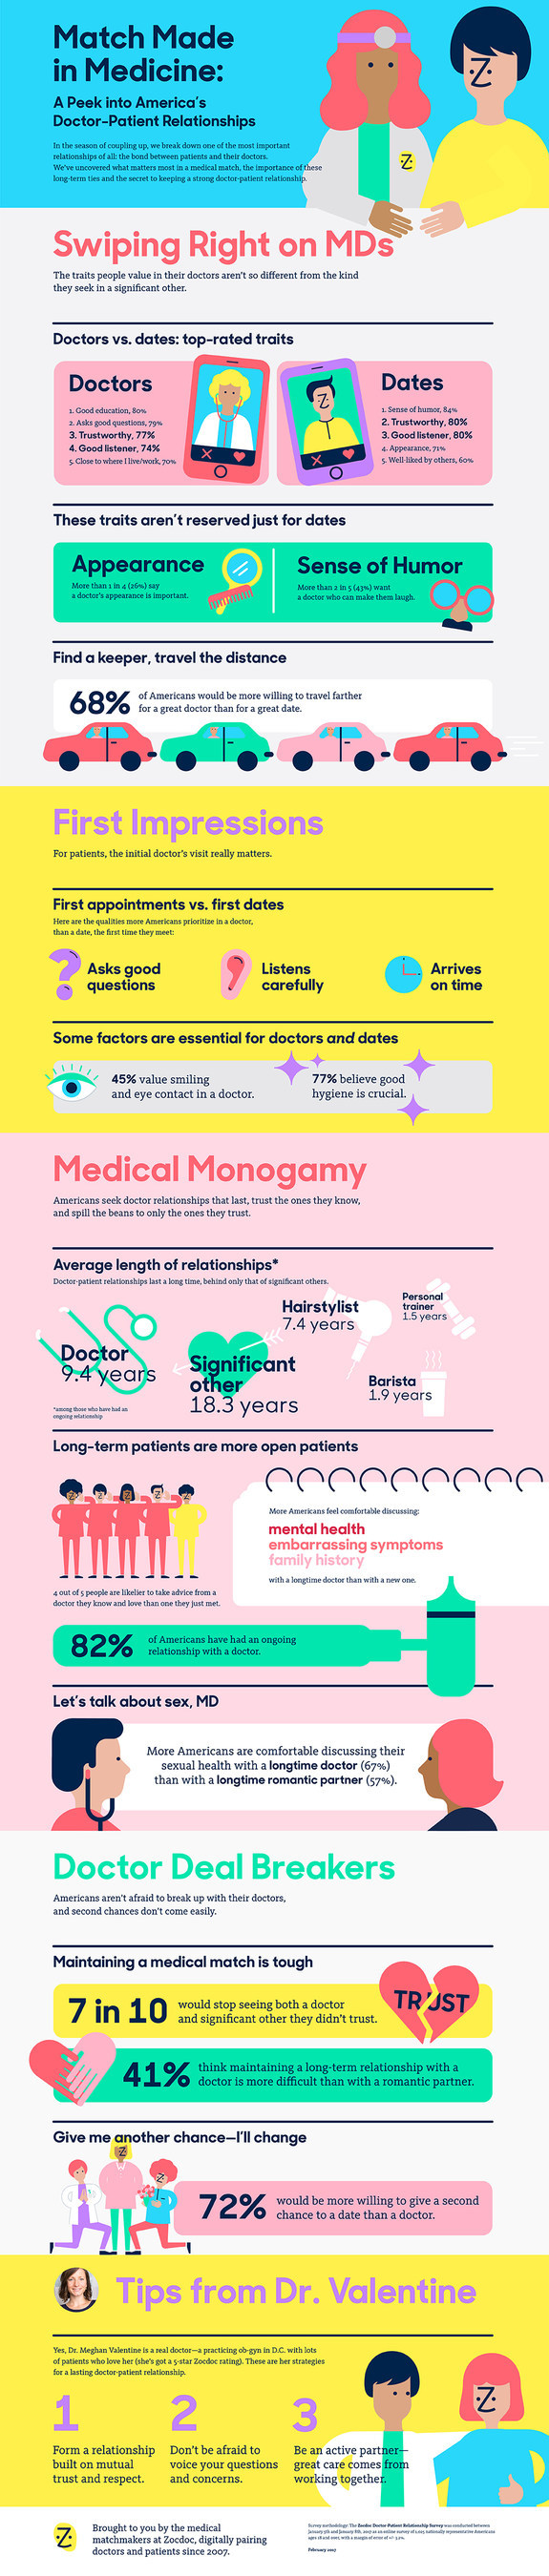 Zocdoc Report - Match Made in Medicine: A Peek into America's Doctor-Patient Relationships